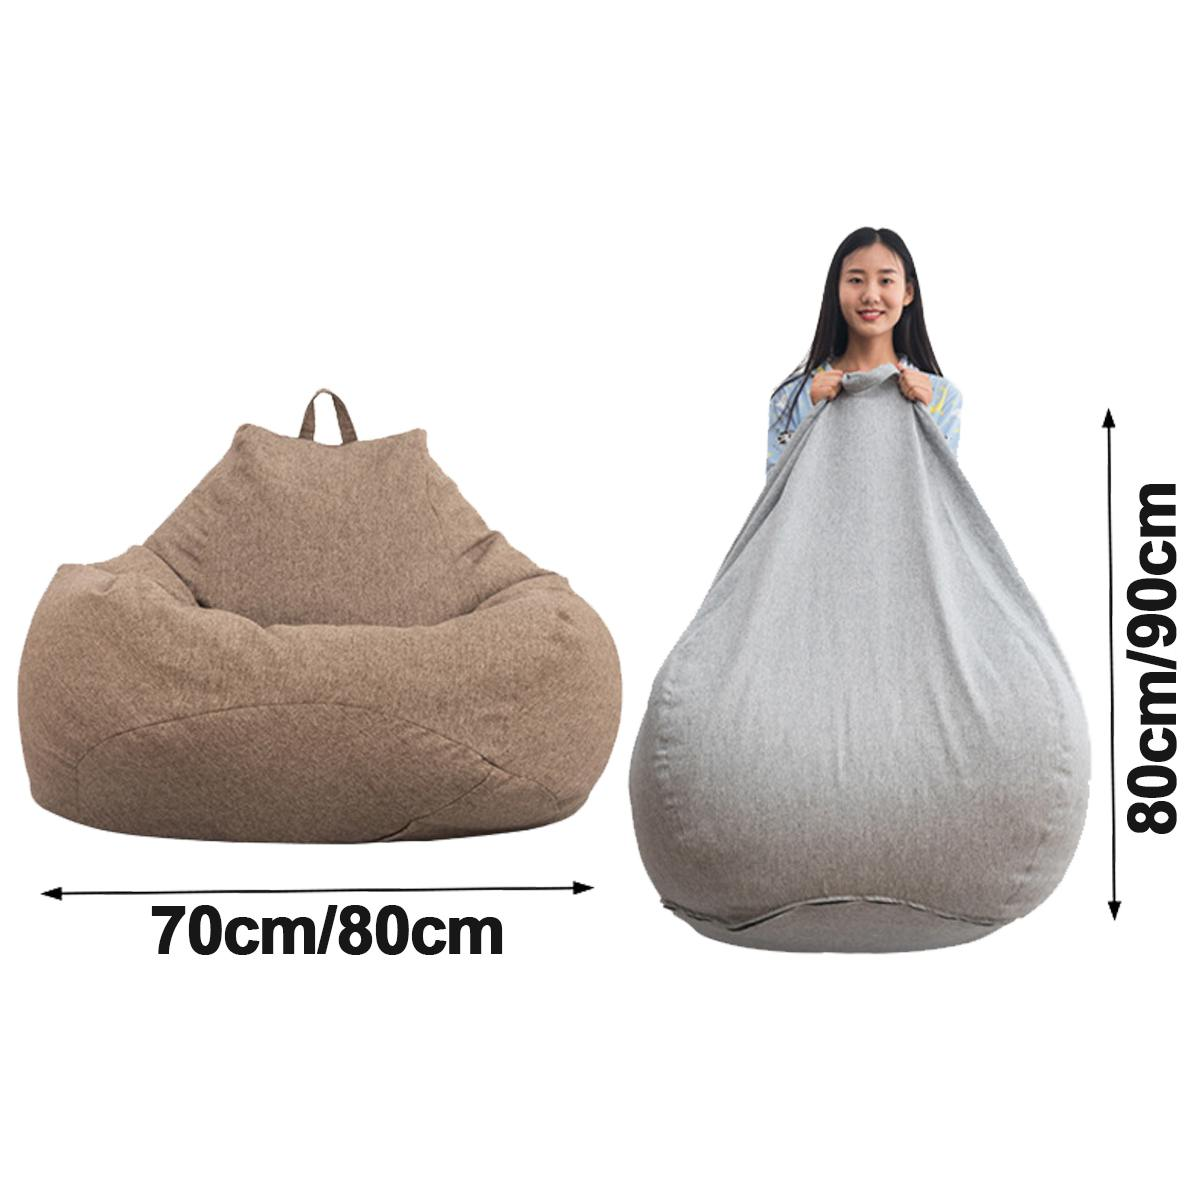 Lazy BeanBag Sofas Inner Lining Waterproof Stuffed Animal Storage Toy Bean Bag Without Cover Chair Beanbag Sofas Lining Only